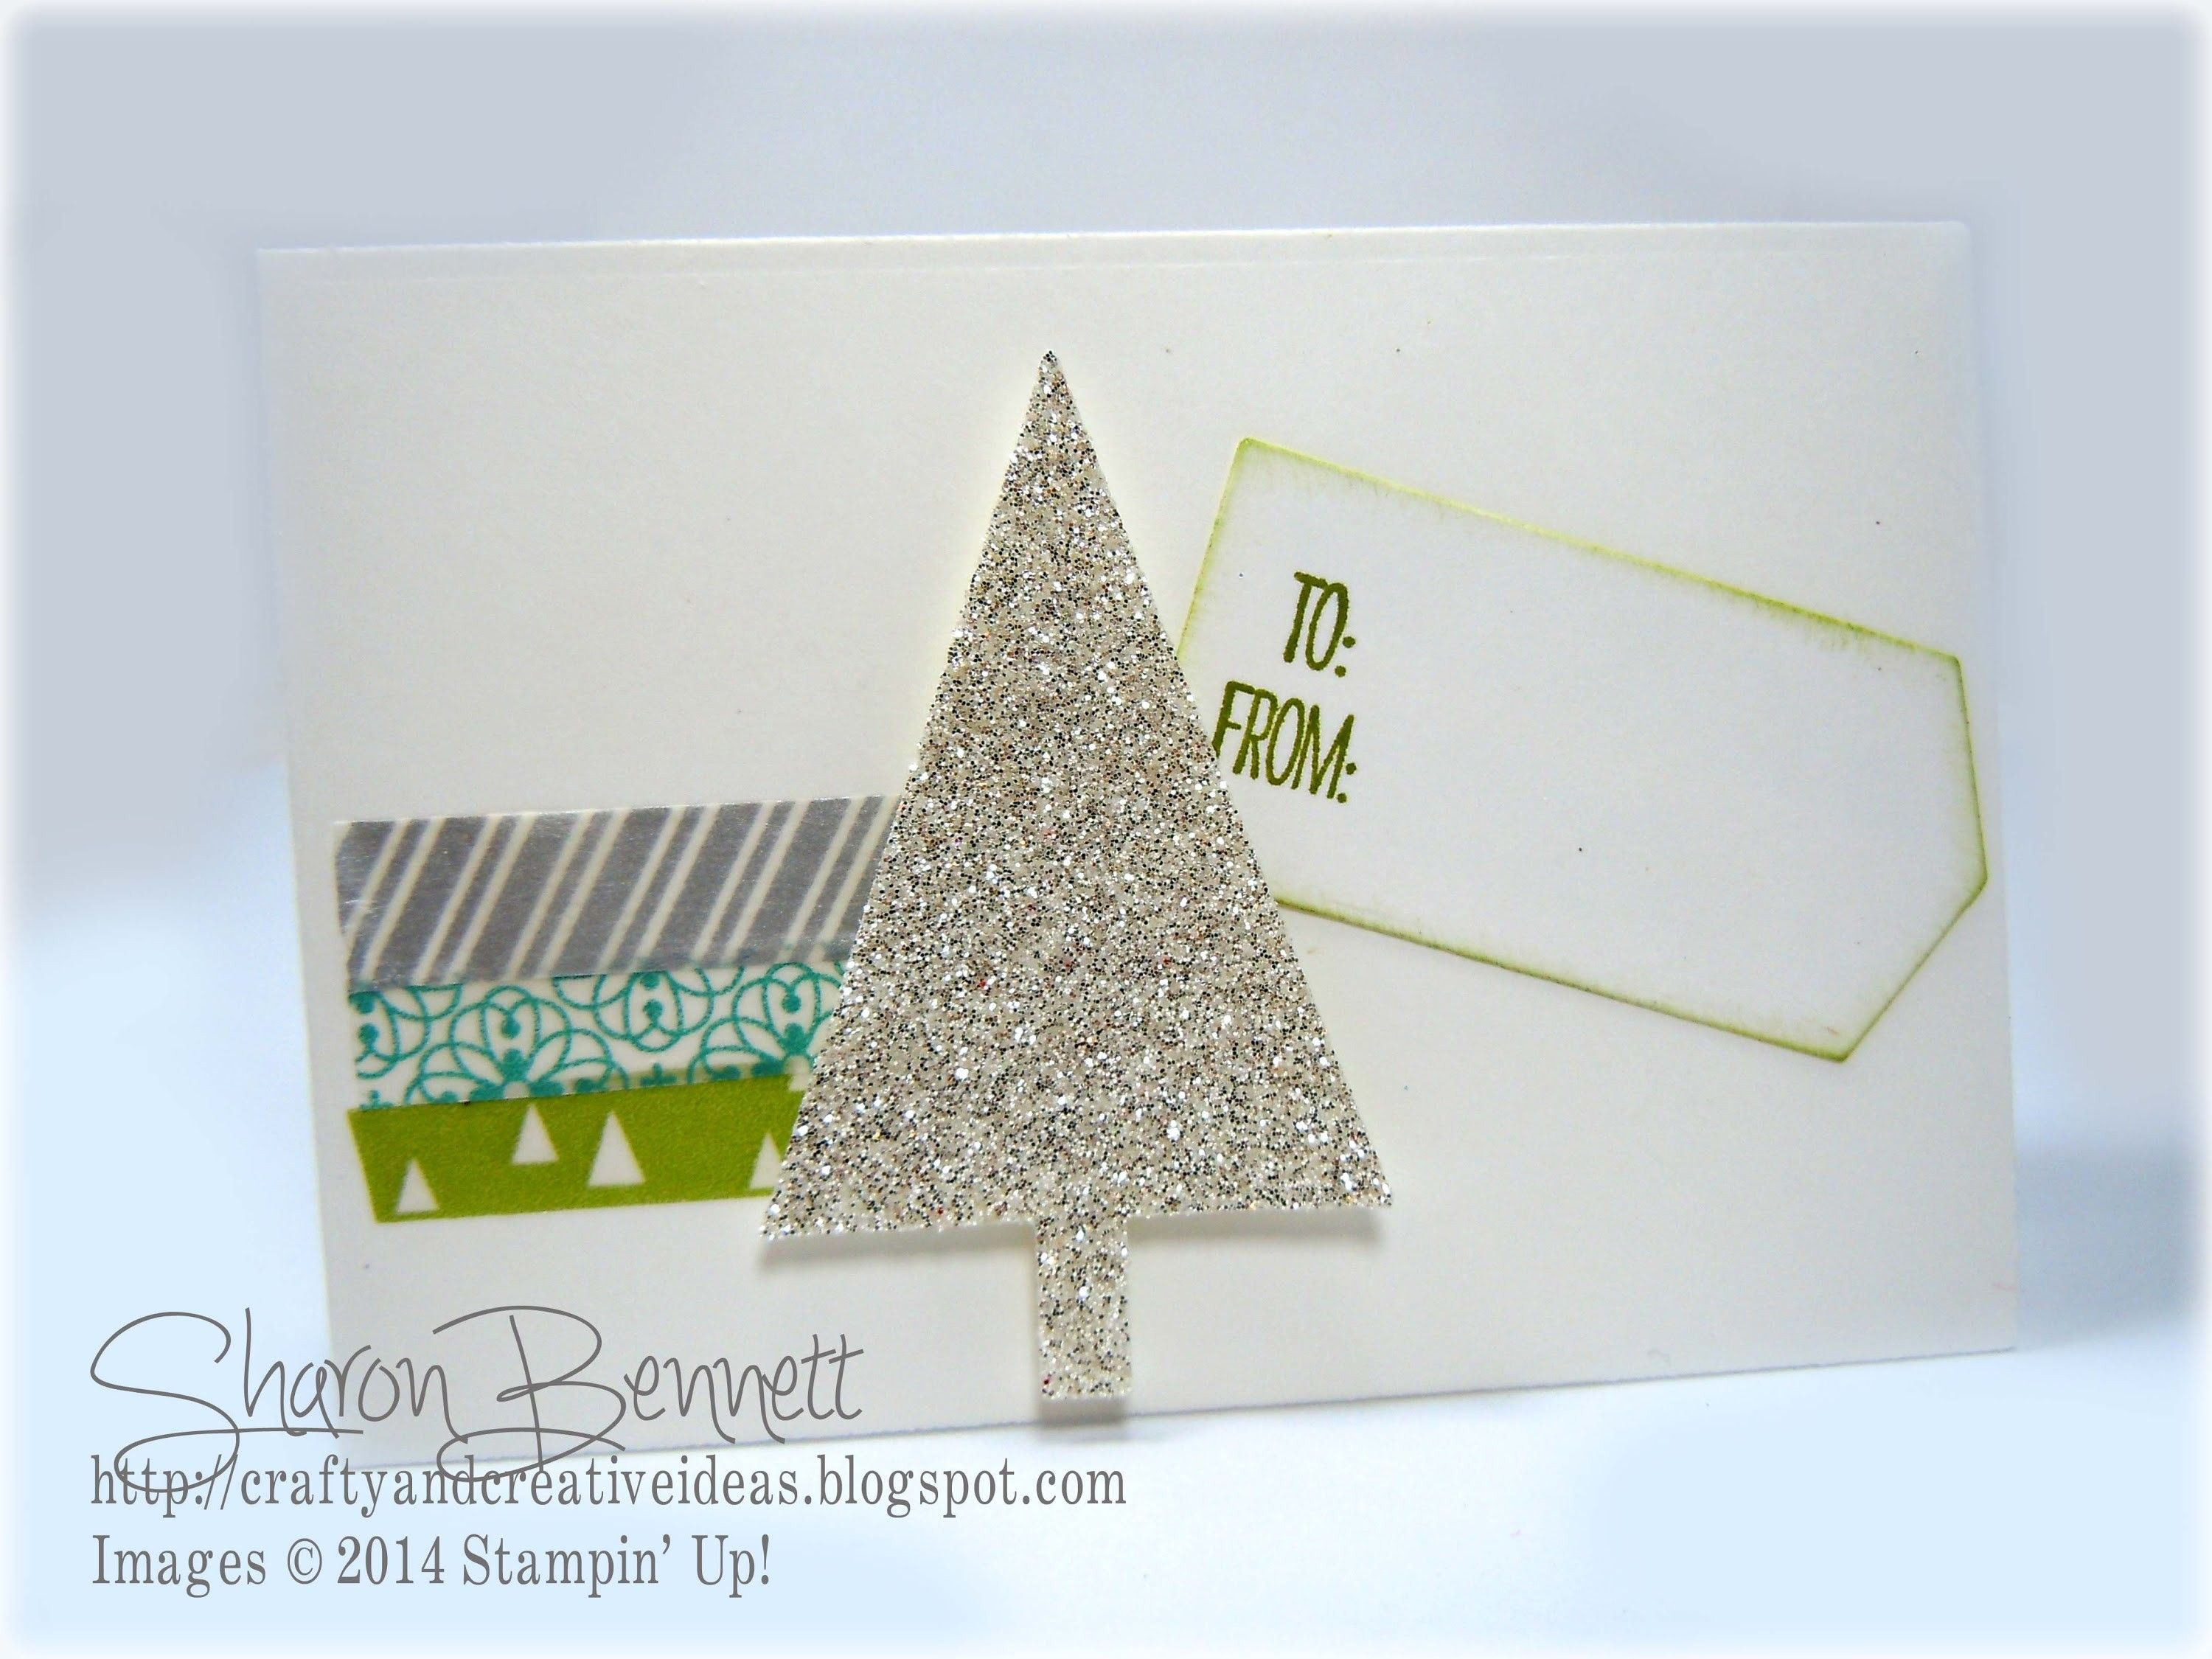 Stampin UP Christmas Gift Card Using Gift Card Envelope & Trims Thinlits Dies